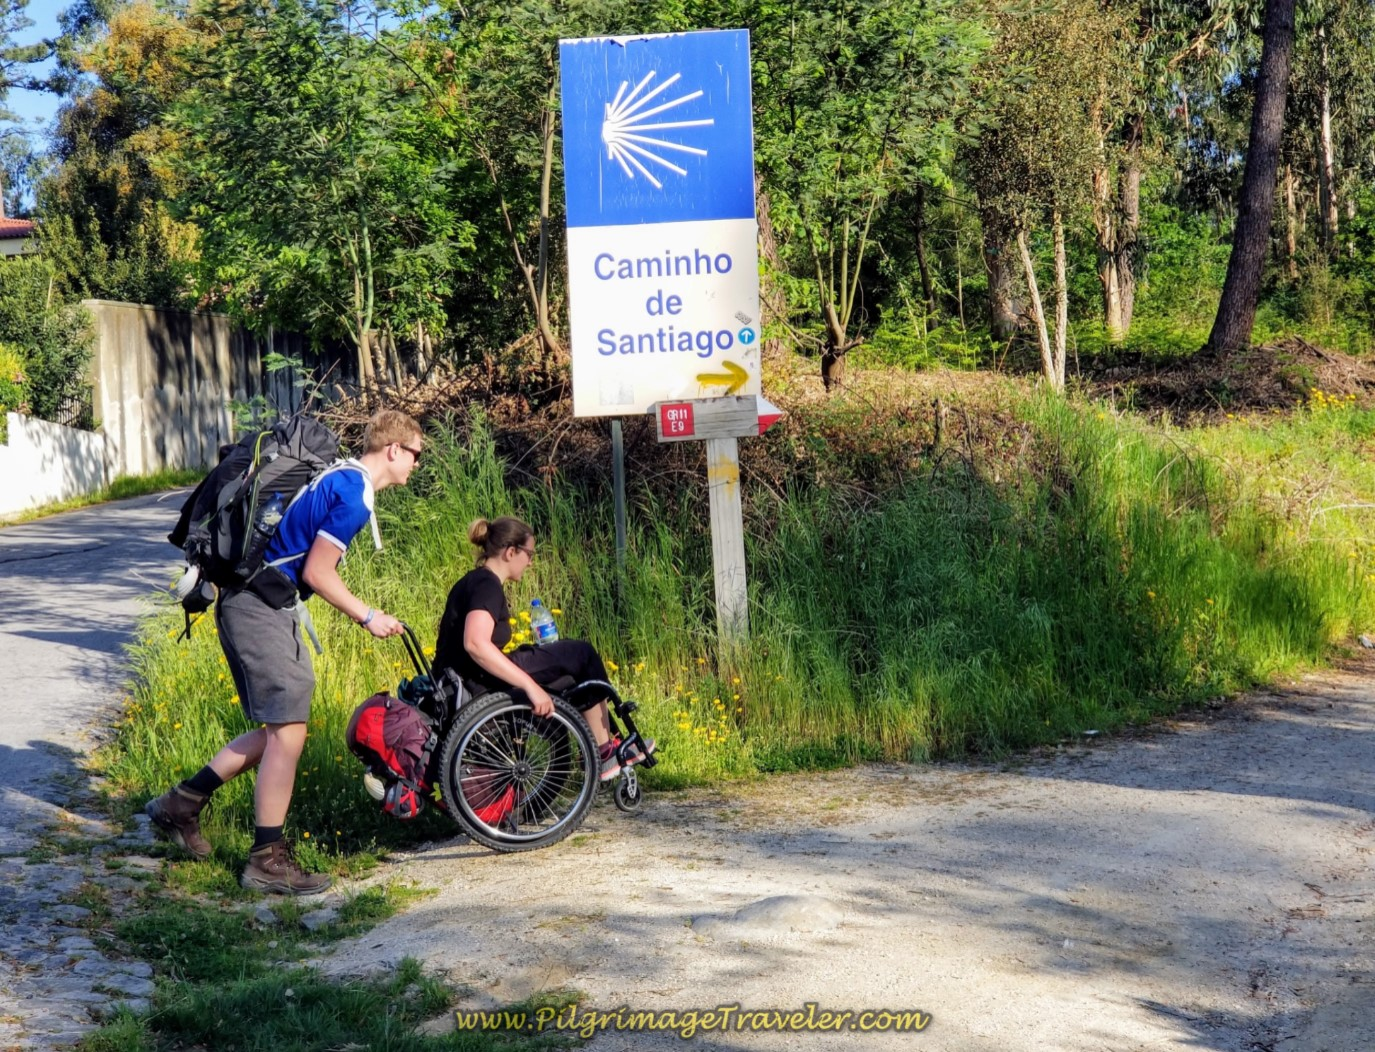 Magnus Pushes Magdalena on the Caminho de Santo Tiago, Lijó, Portugal on day seventeen on the Central Route of the Camino Portugués